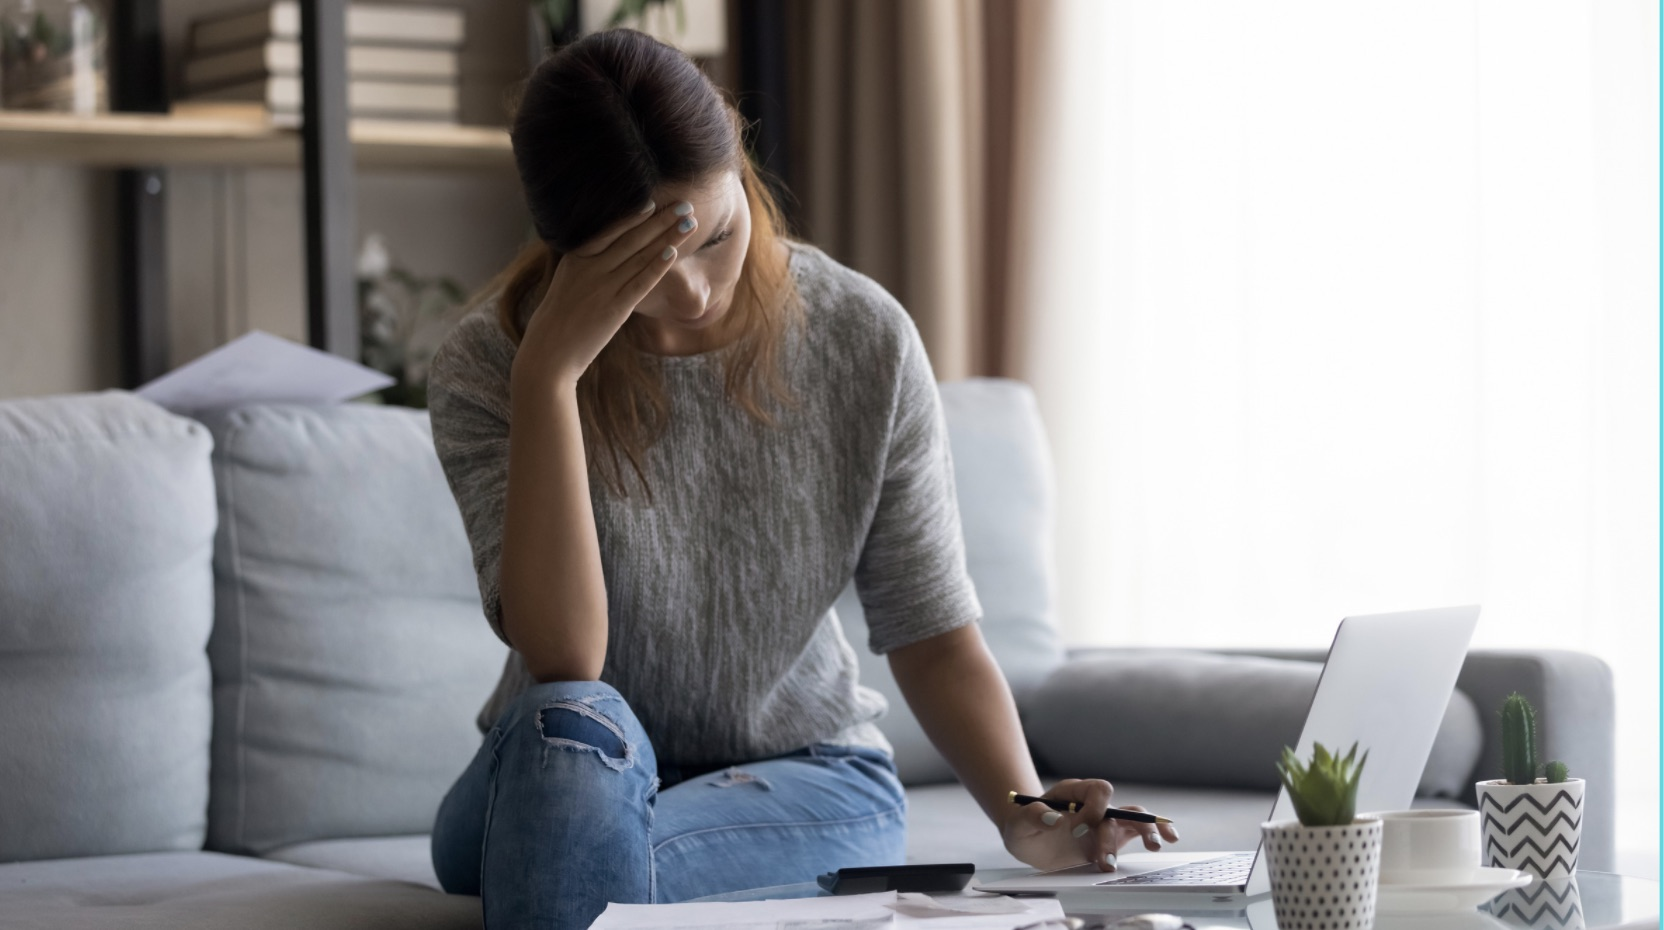 Young professional women paying bills on her computer and stressed about making ends meet.